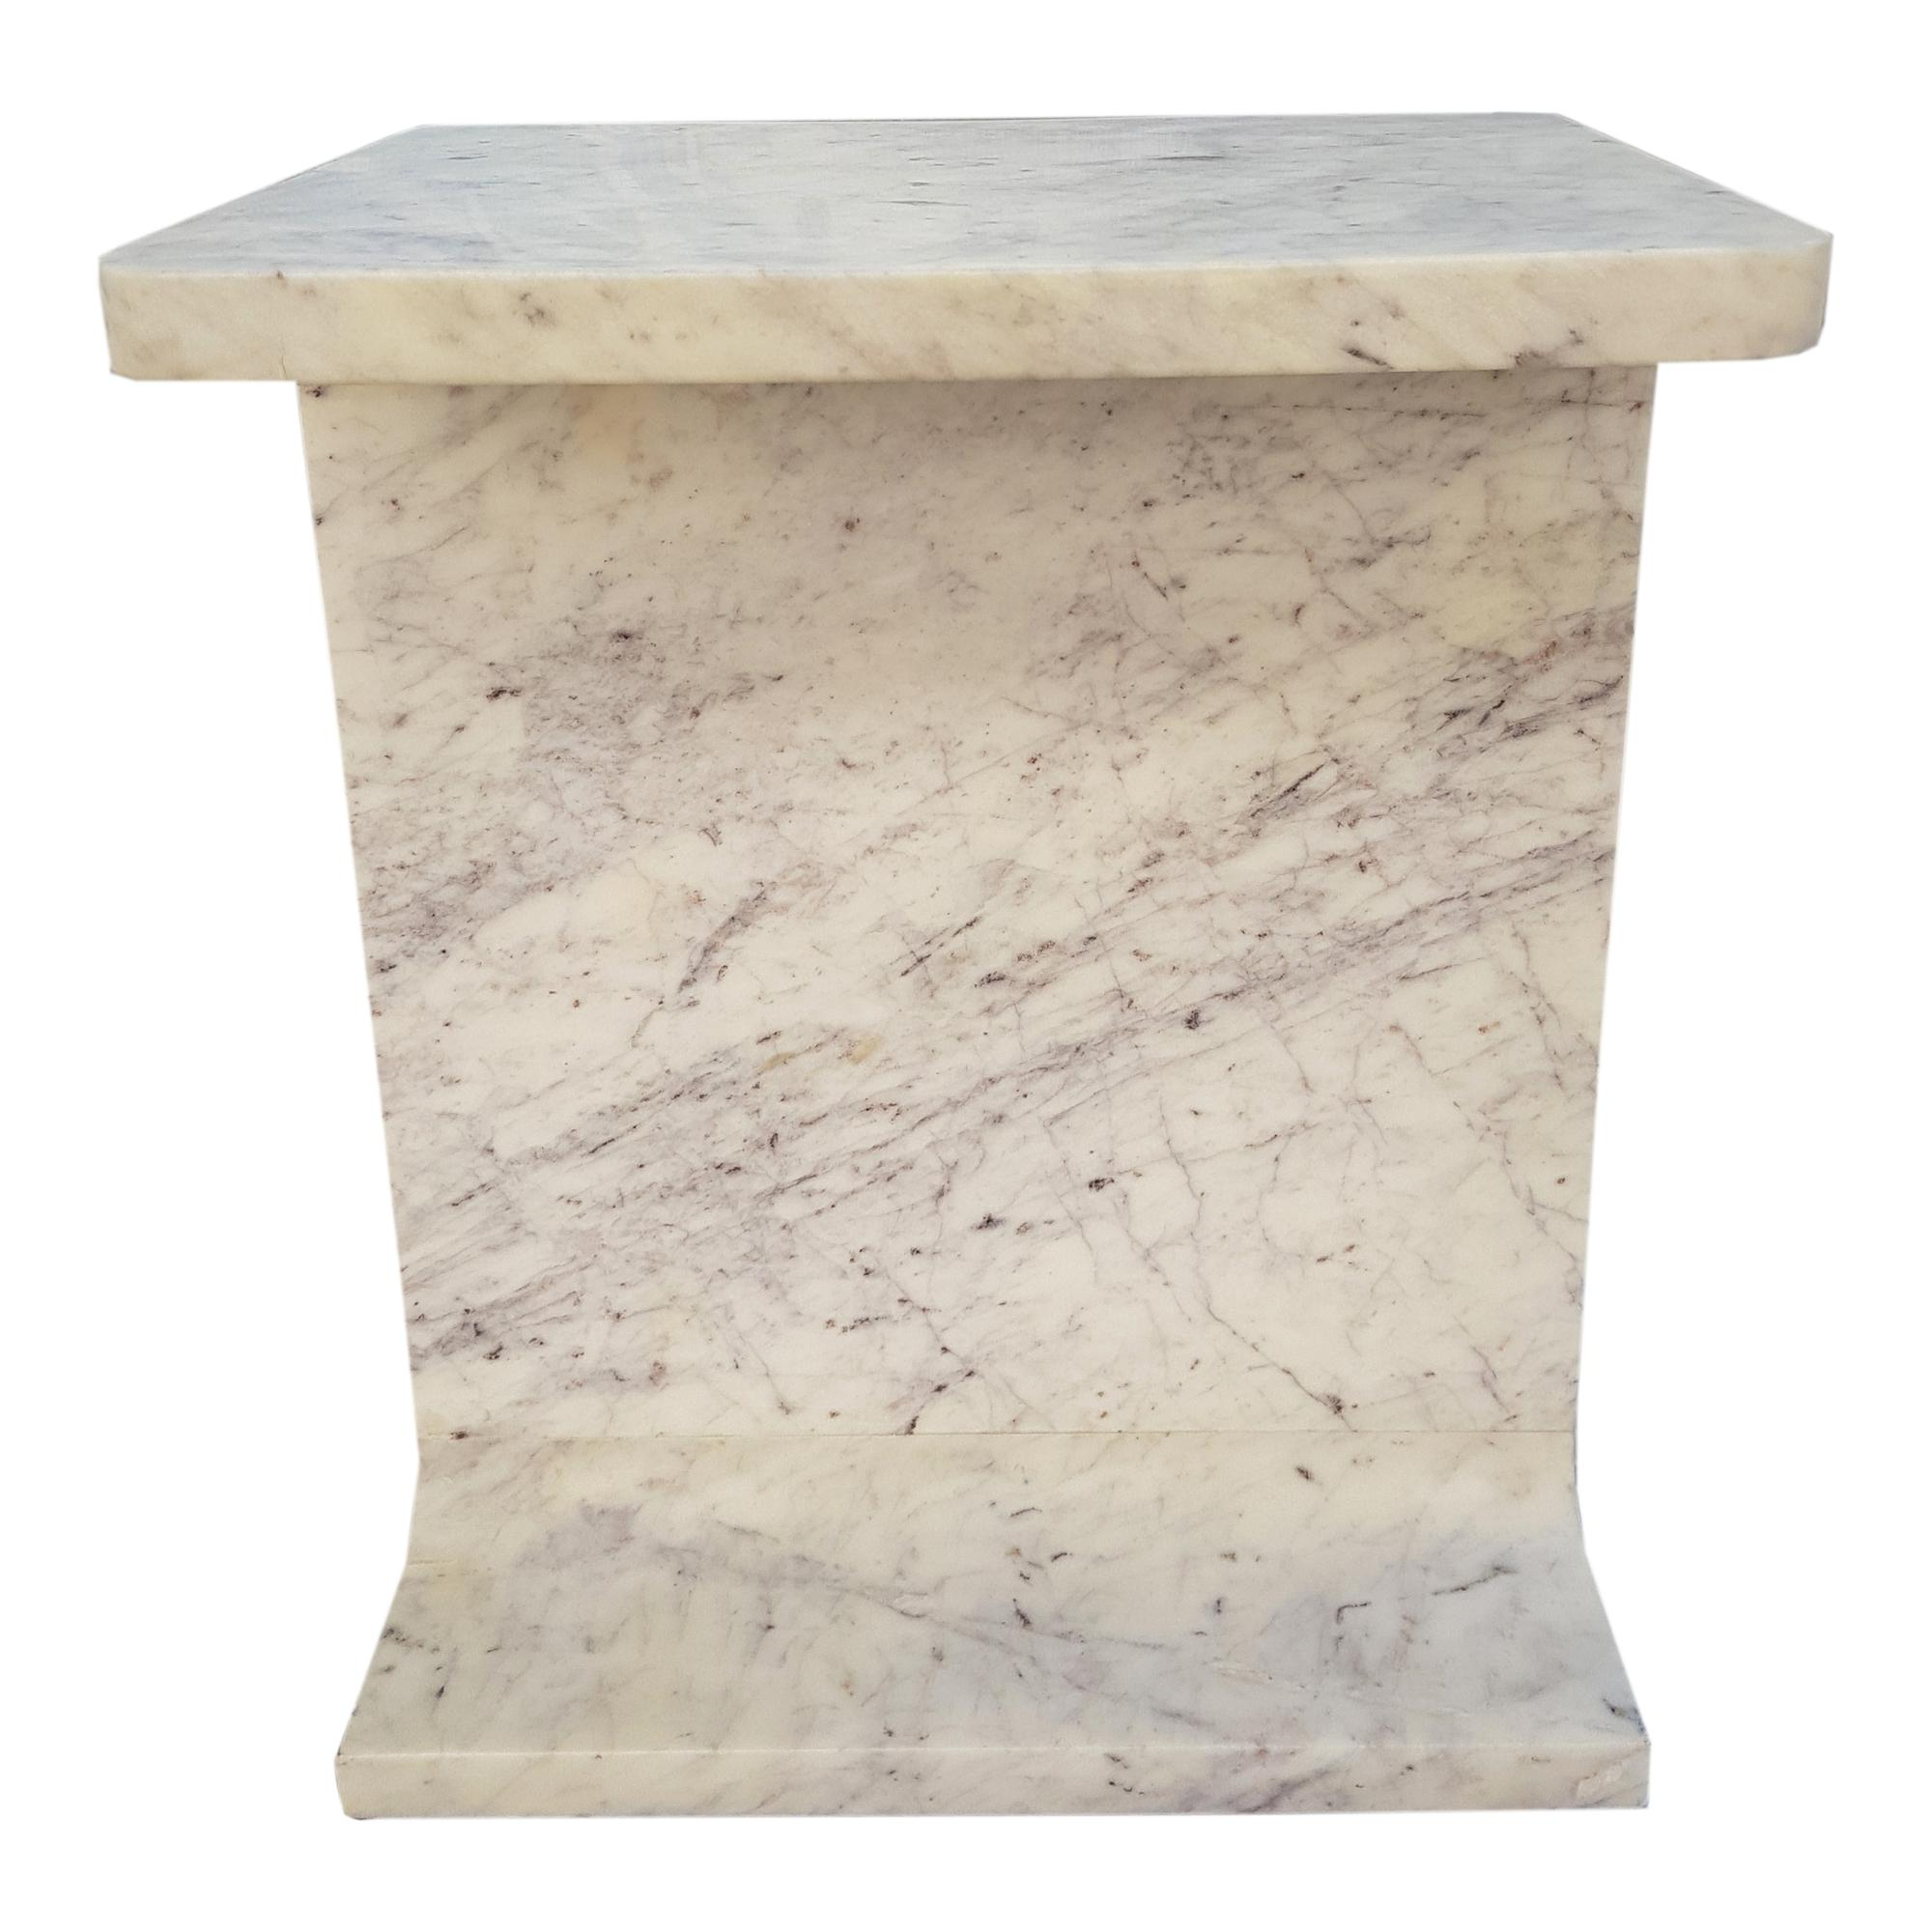 moes home abacus white marble accent table the classy ctl click enlarge skinny foyer pub set emerald green sofa uttermost laton mirrored wood trestle dining small glass bedside